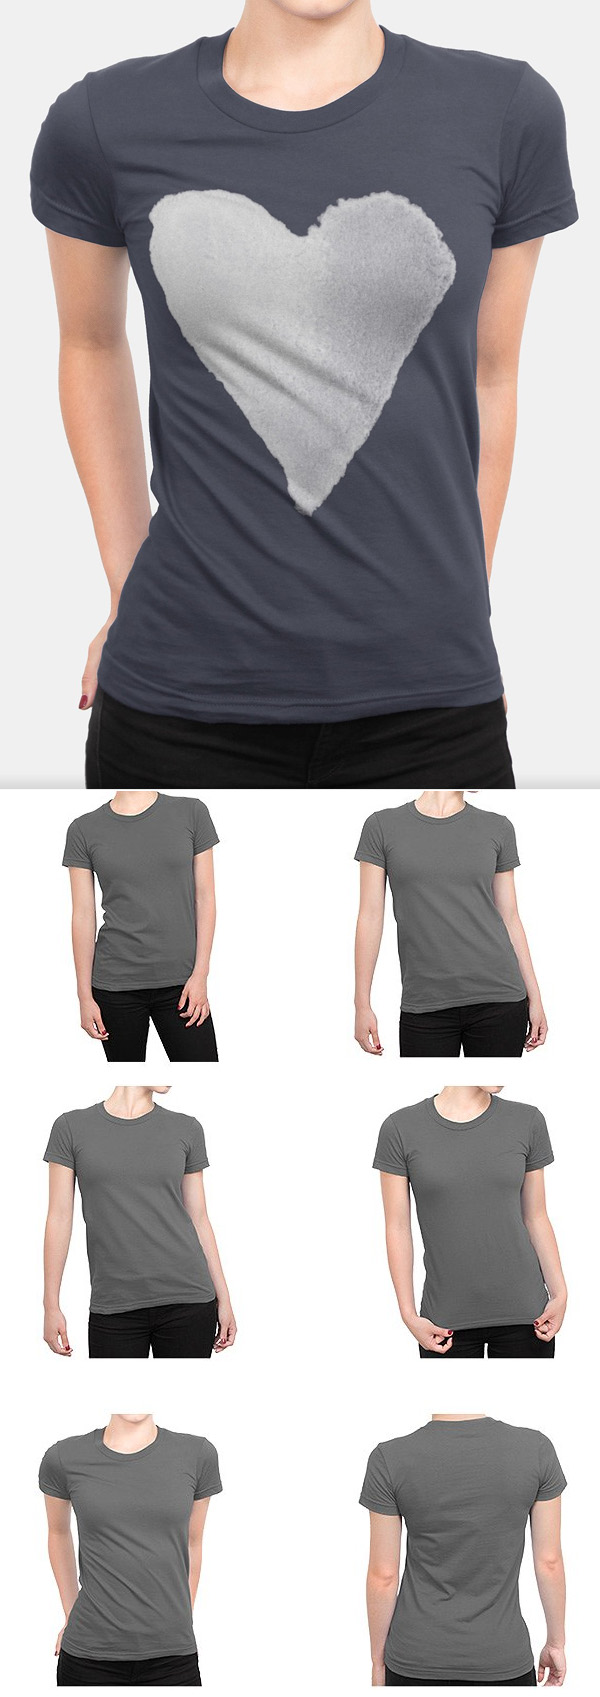 Women's T-Shirt Apparel Mockups